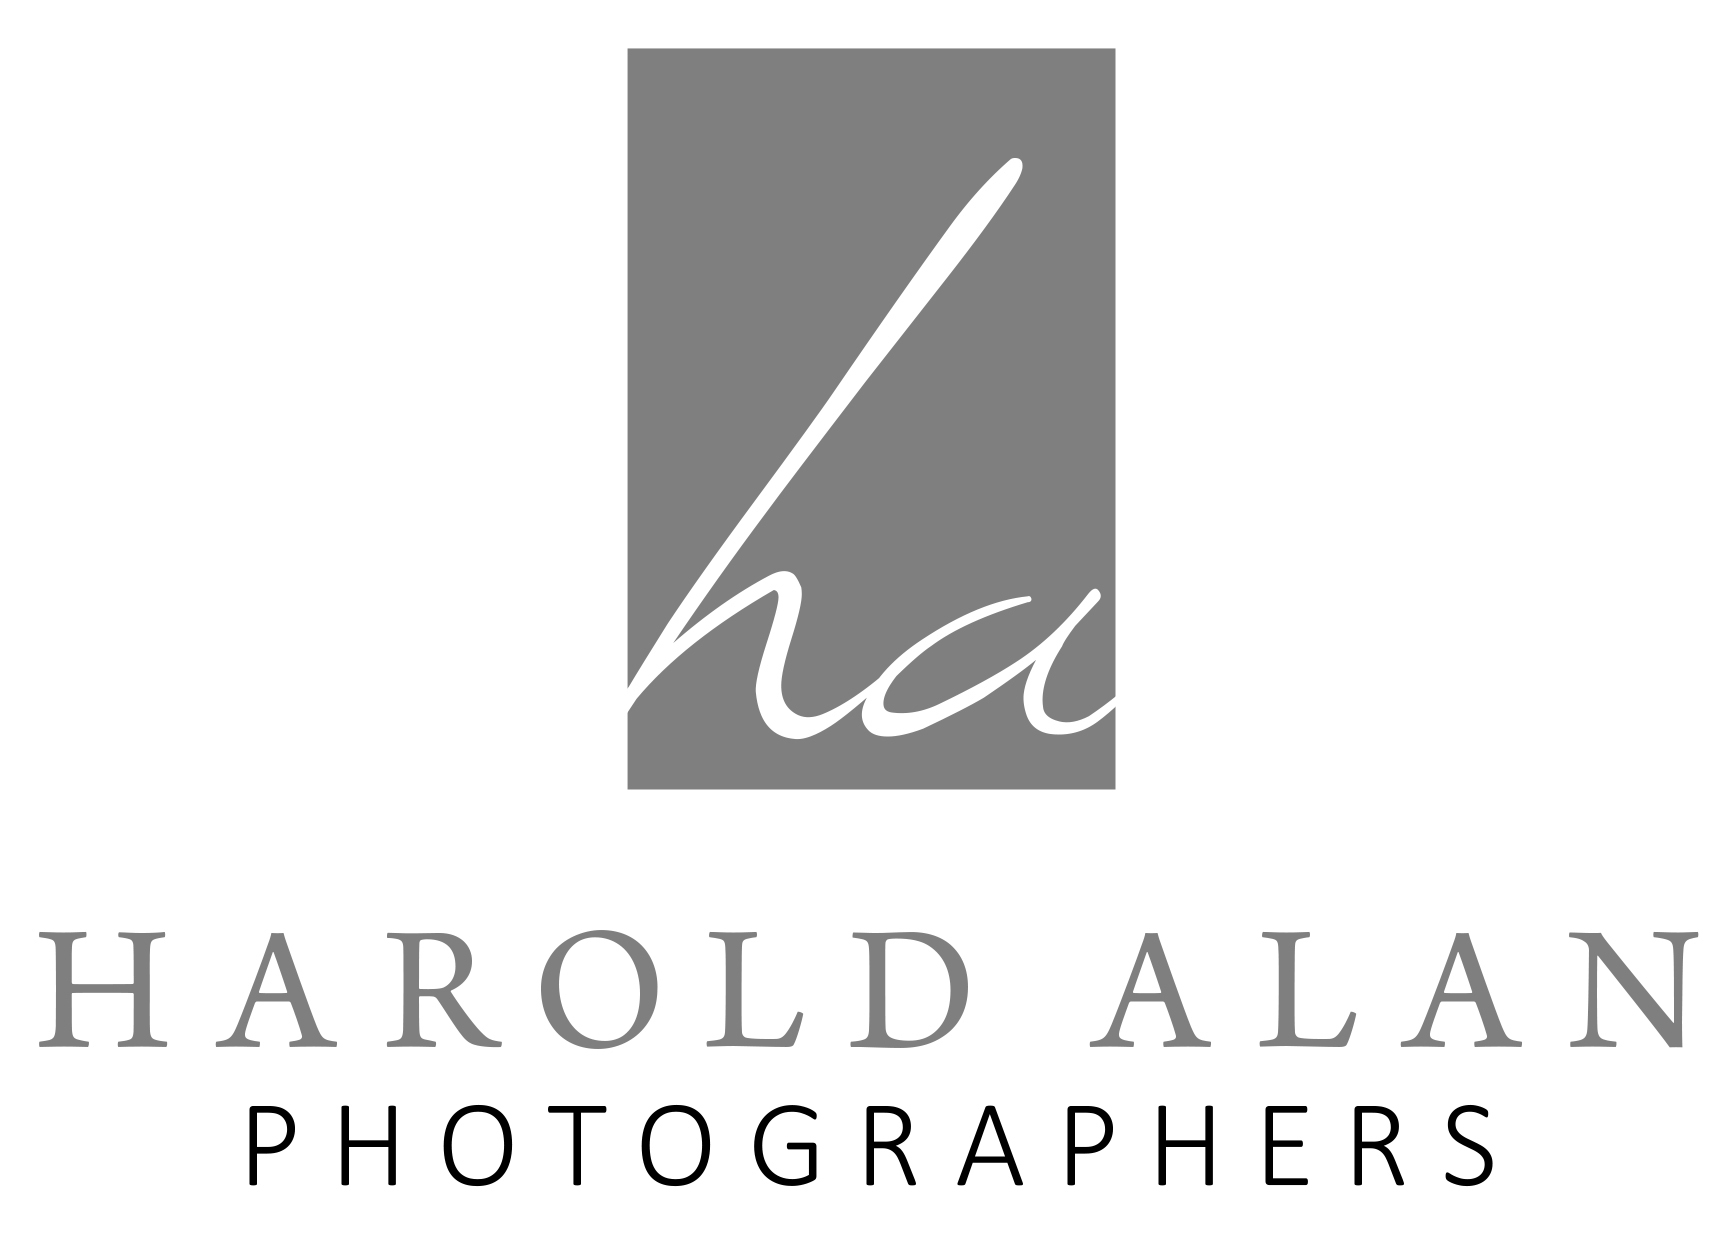 Harold Alan Photographers